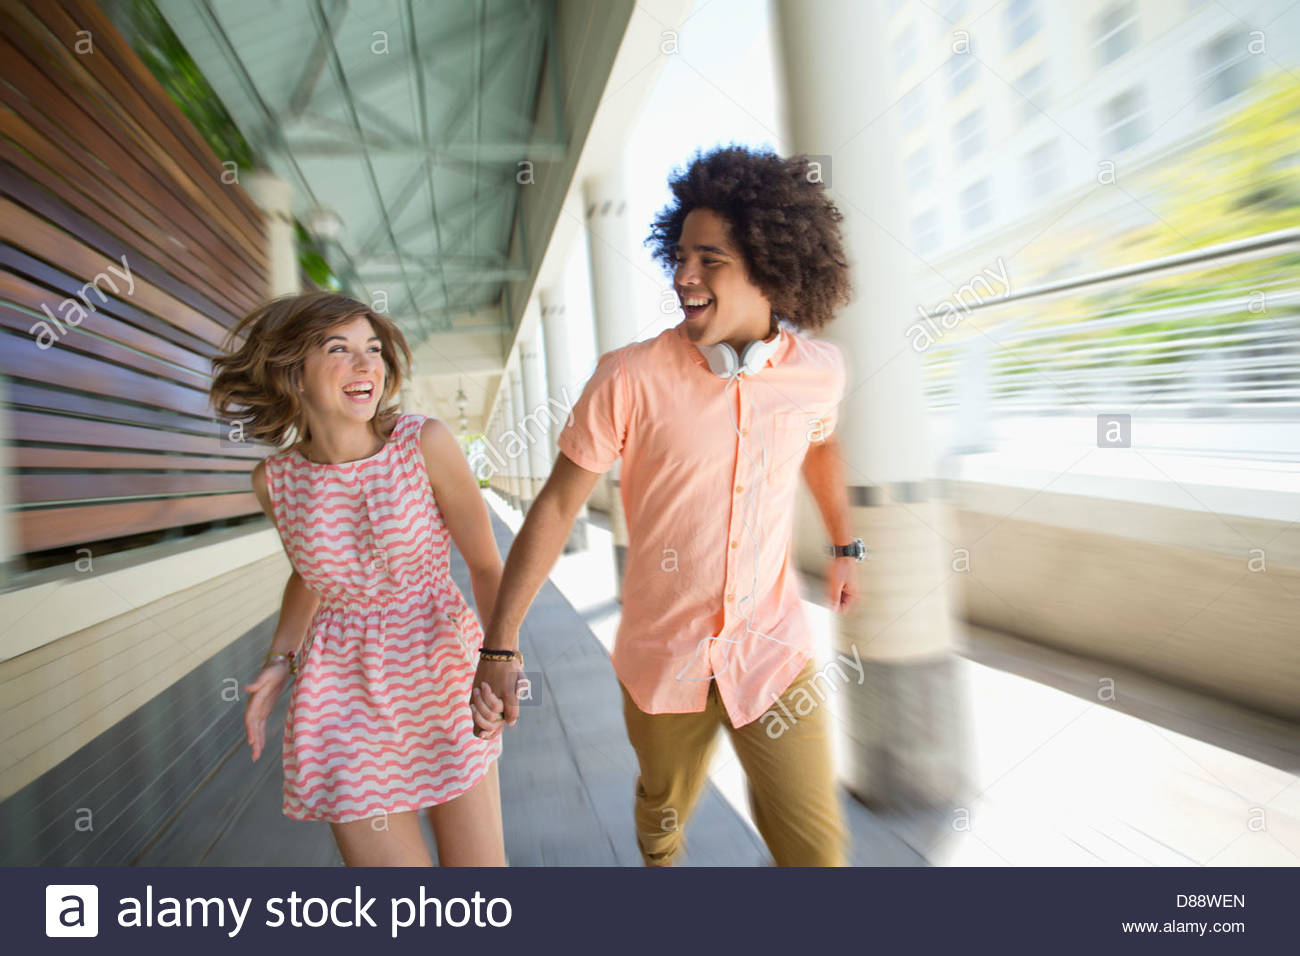 Enthusiastic young couple running along corridor - Stock Image